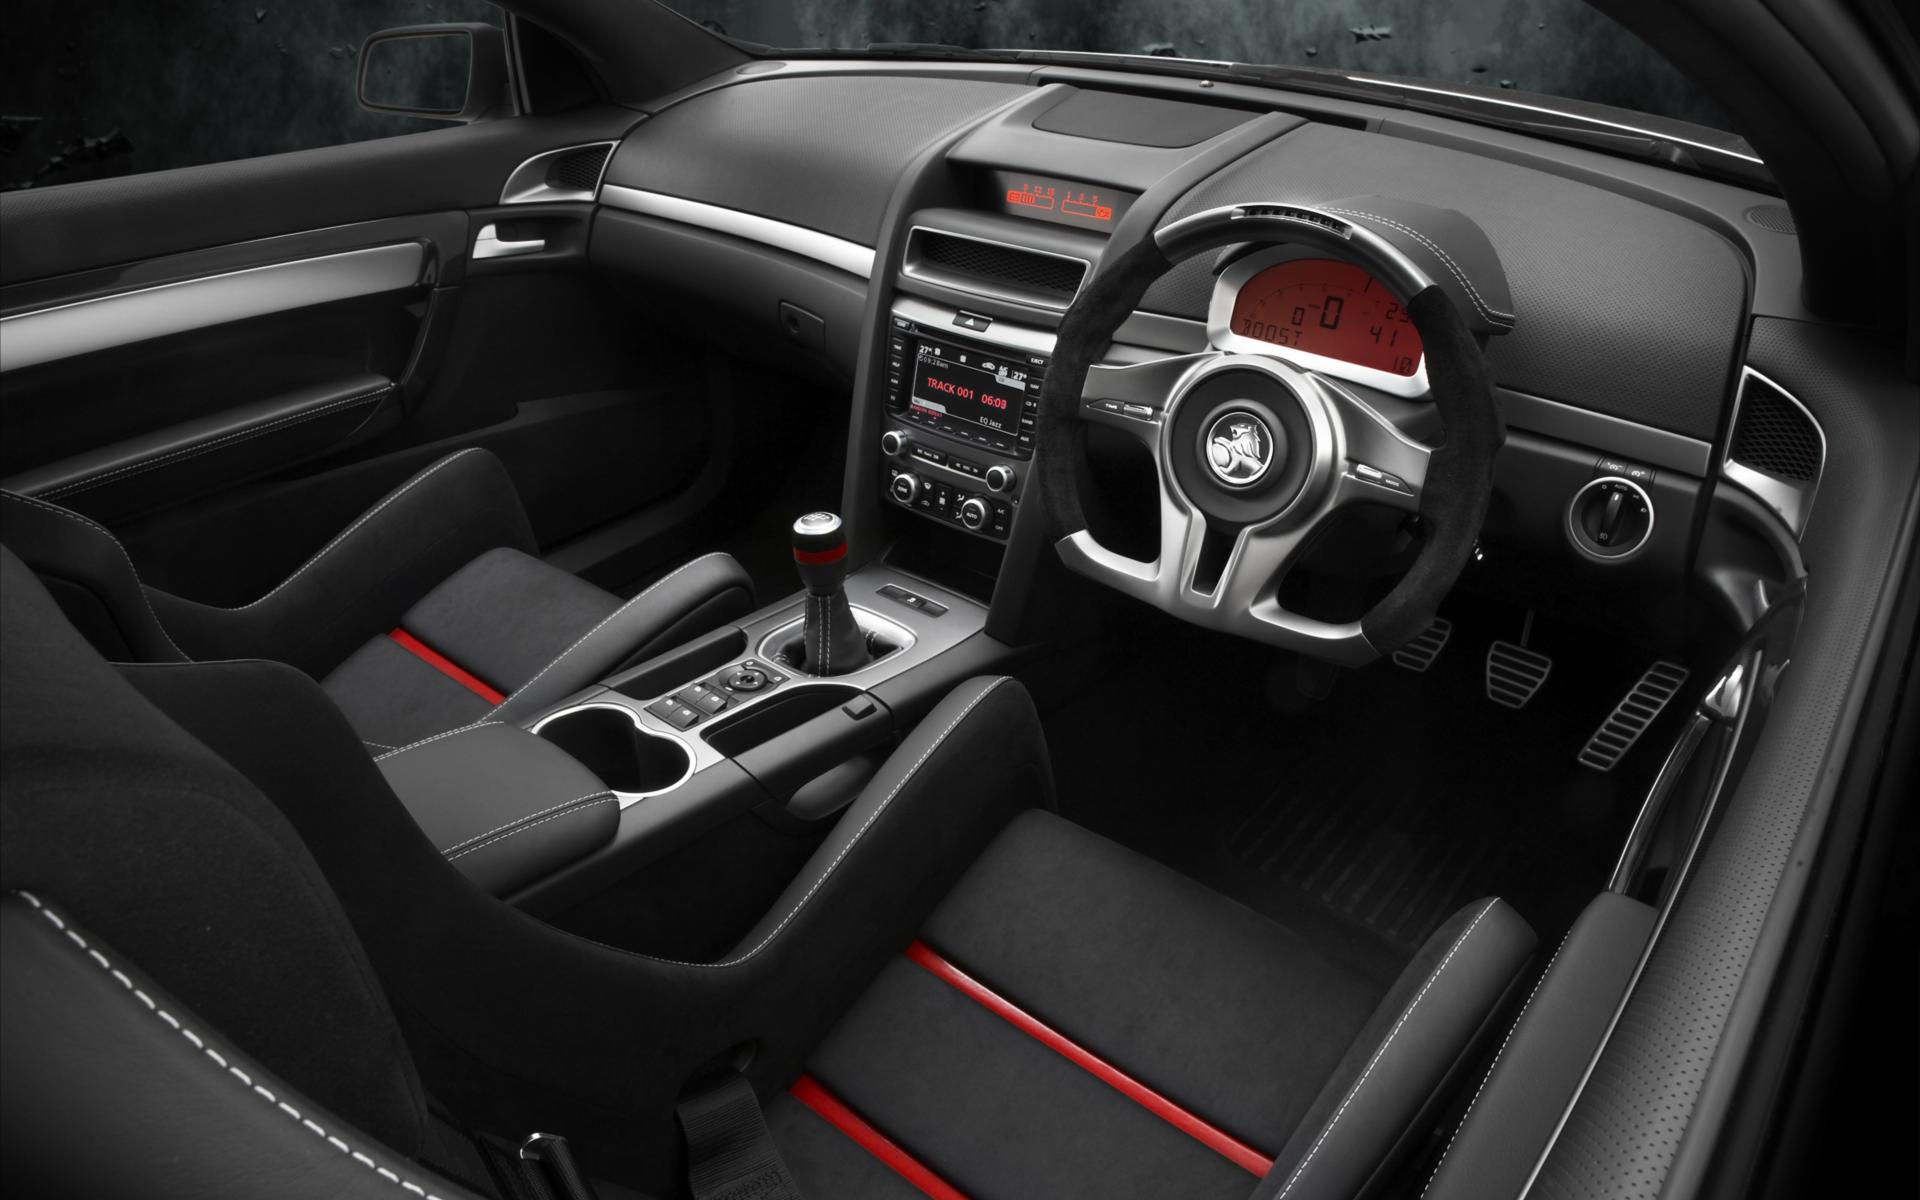 Car Interior | Luxury car Interiors | Pinterest | Car interiors ...